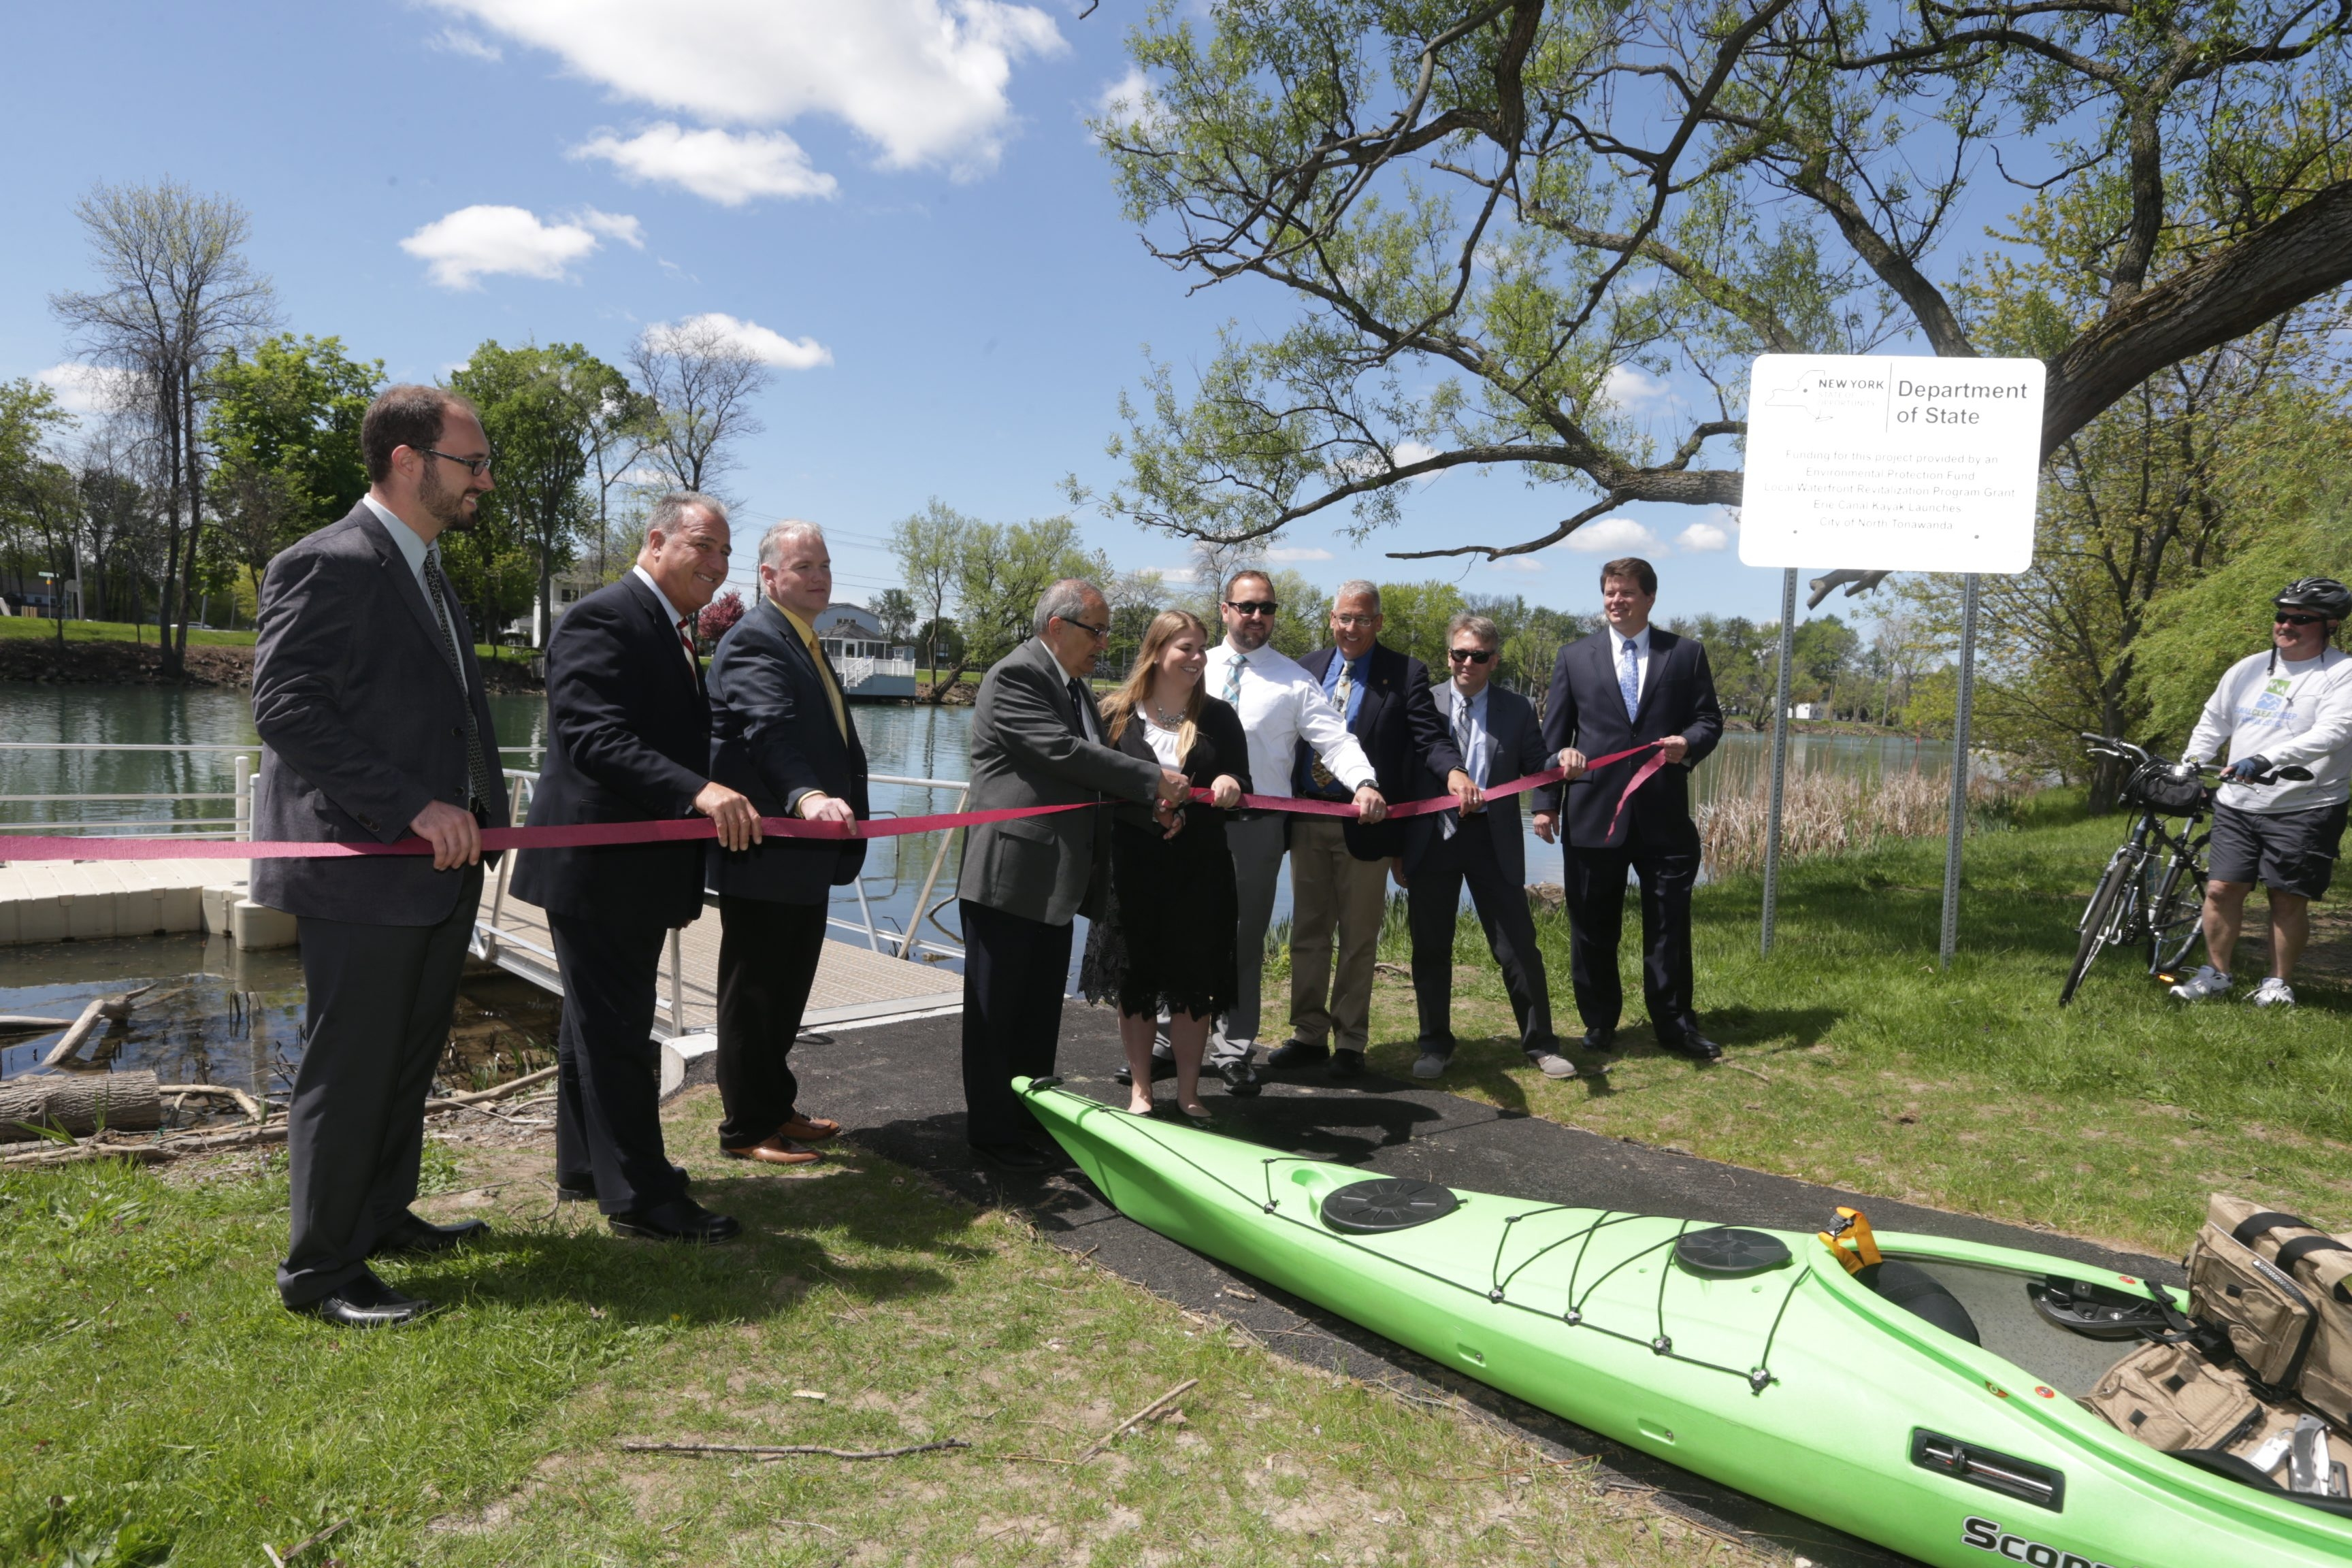 Arthur G. Pappas, Mayor of North Tonawanda and other dignitaries cut a ribbon and opened a new   Bike Path and Kayak Launch at the foot of Niagara at Sweeney Street, in North Tonawanda, N.Y., on Wednesday May 18, 2016.   (John Hickey/Buffalo News)